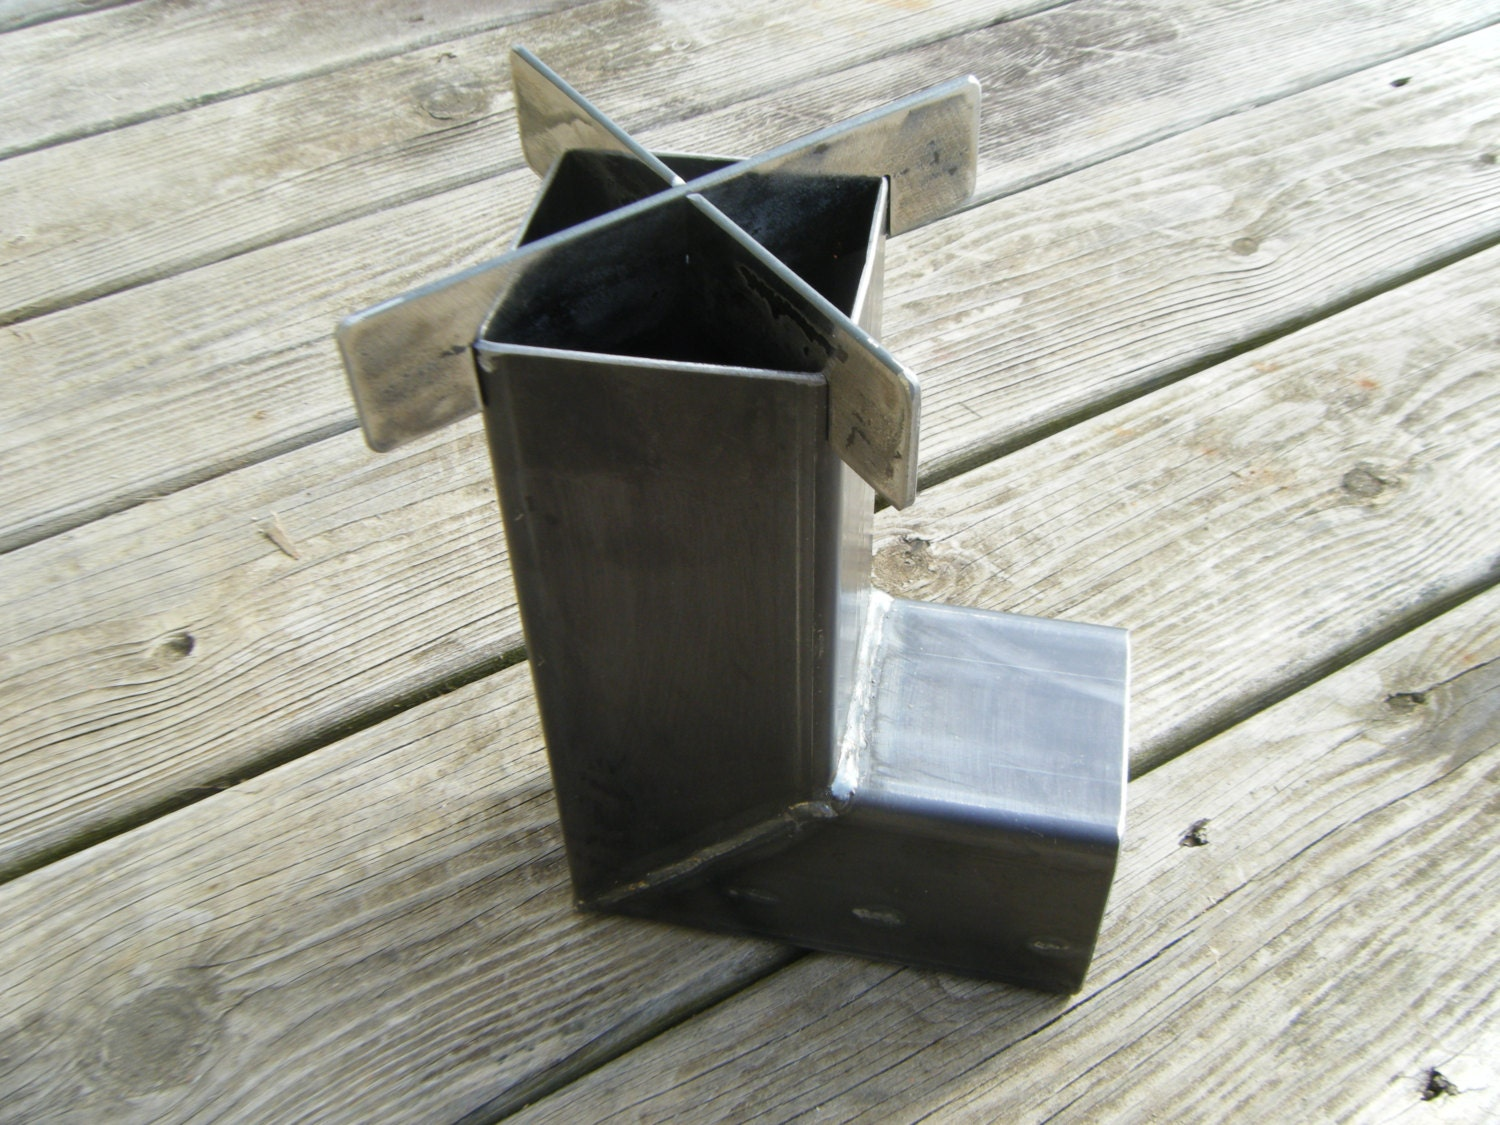 Wood Burning Rocket Stove For Camping Hunting Prepper Compact